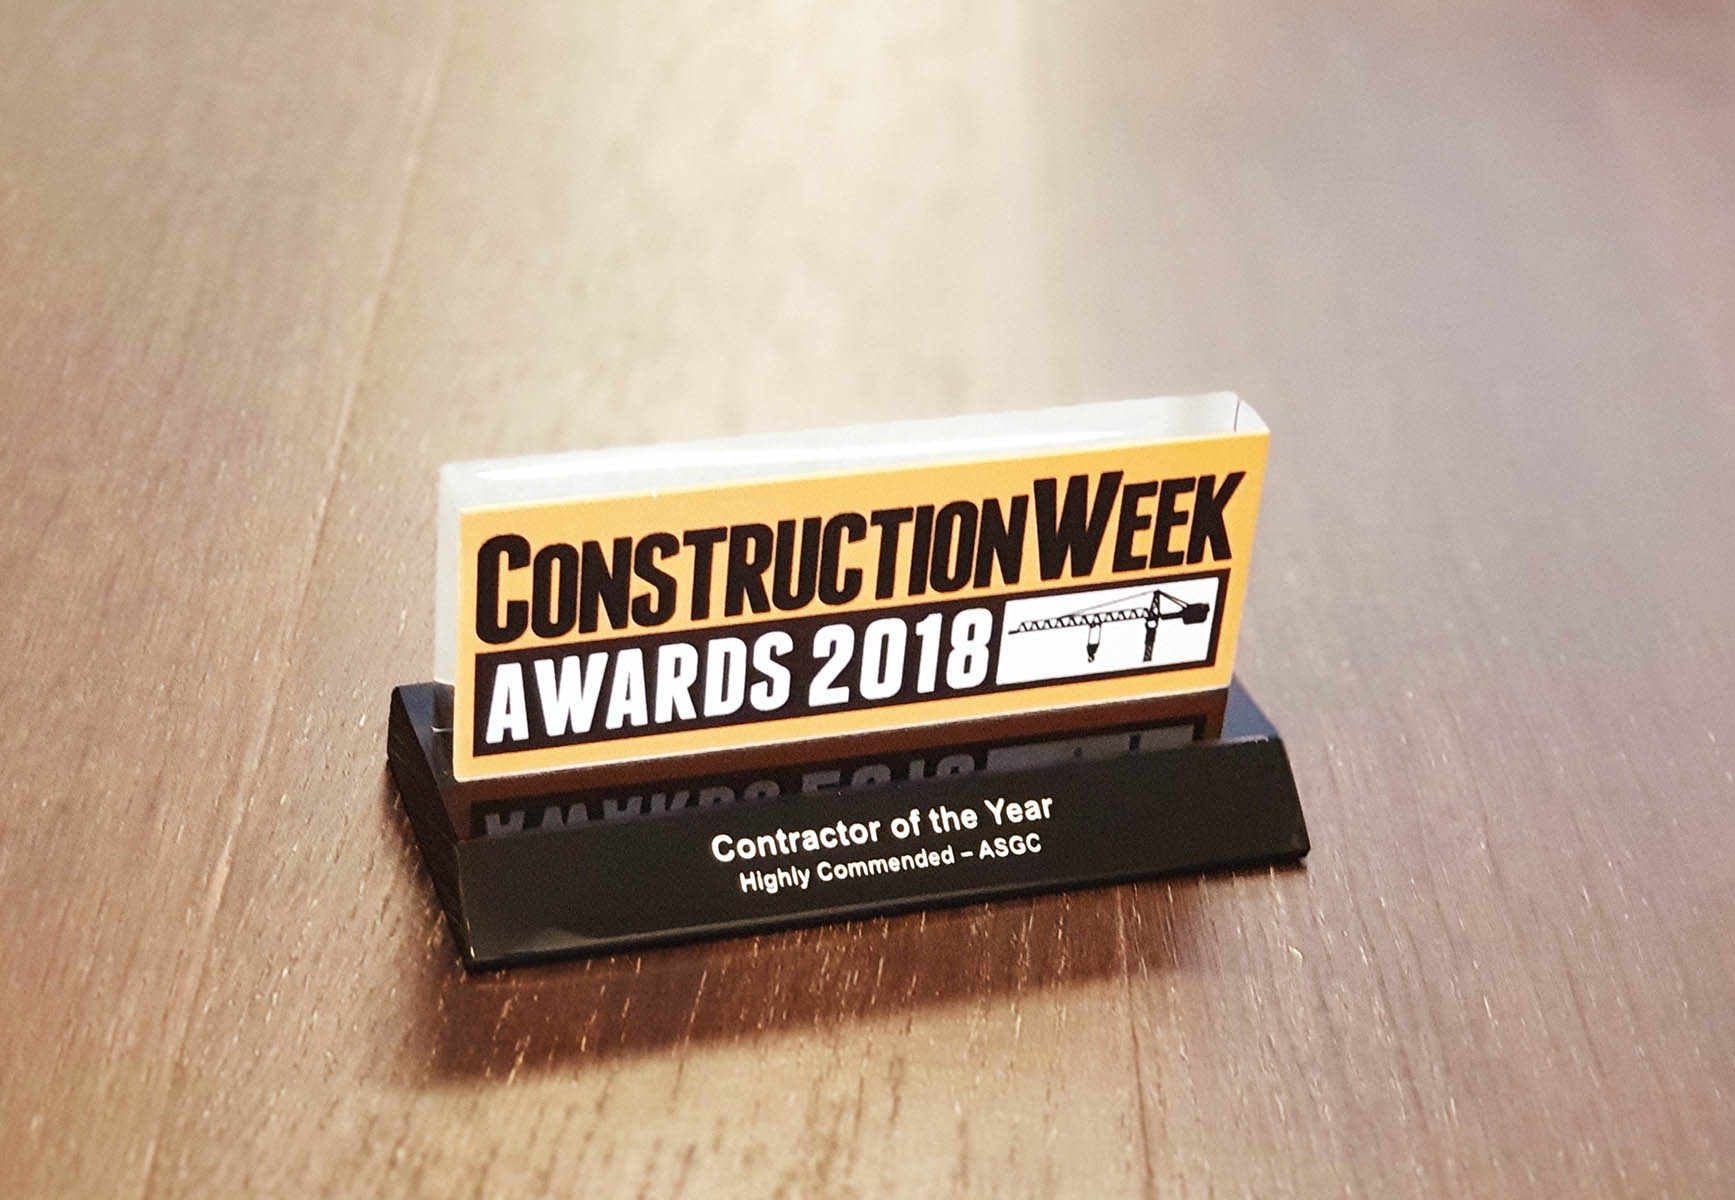 Contractor of the Year 2018 – Highly Commended by Construction Week